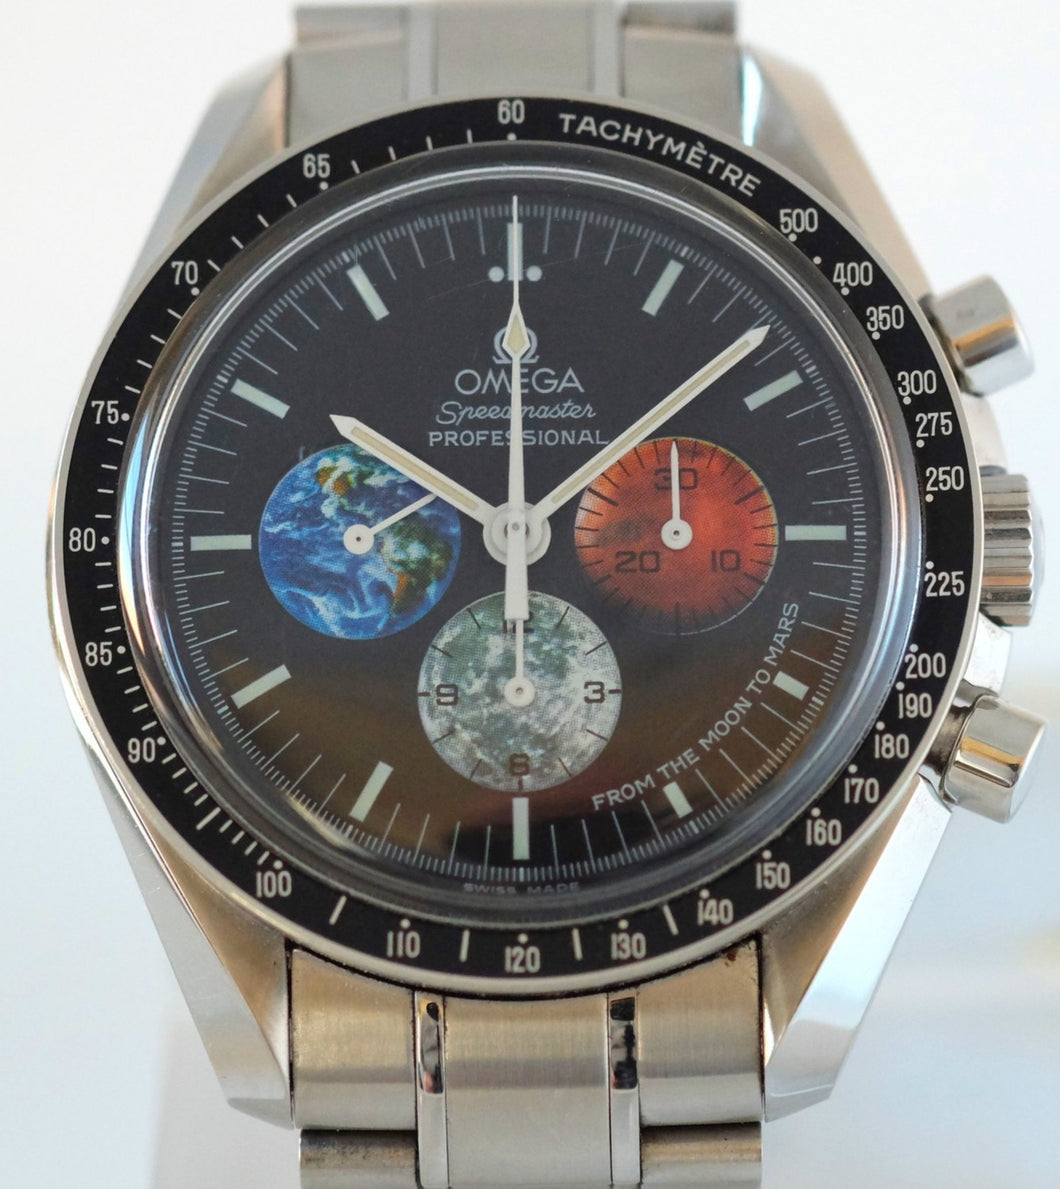 Omega Speedmaster Professional from Moon to Mars